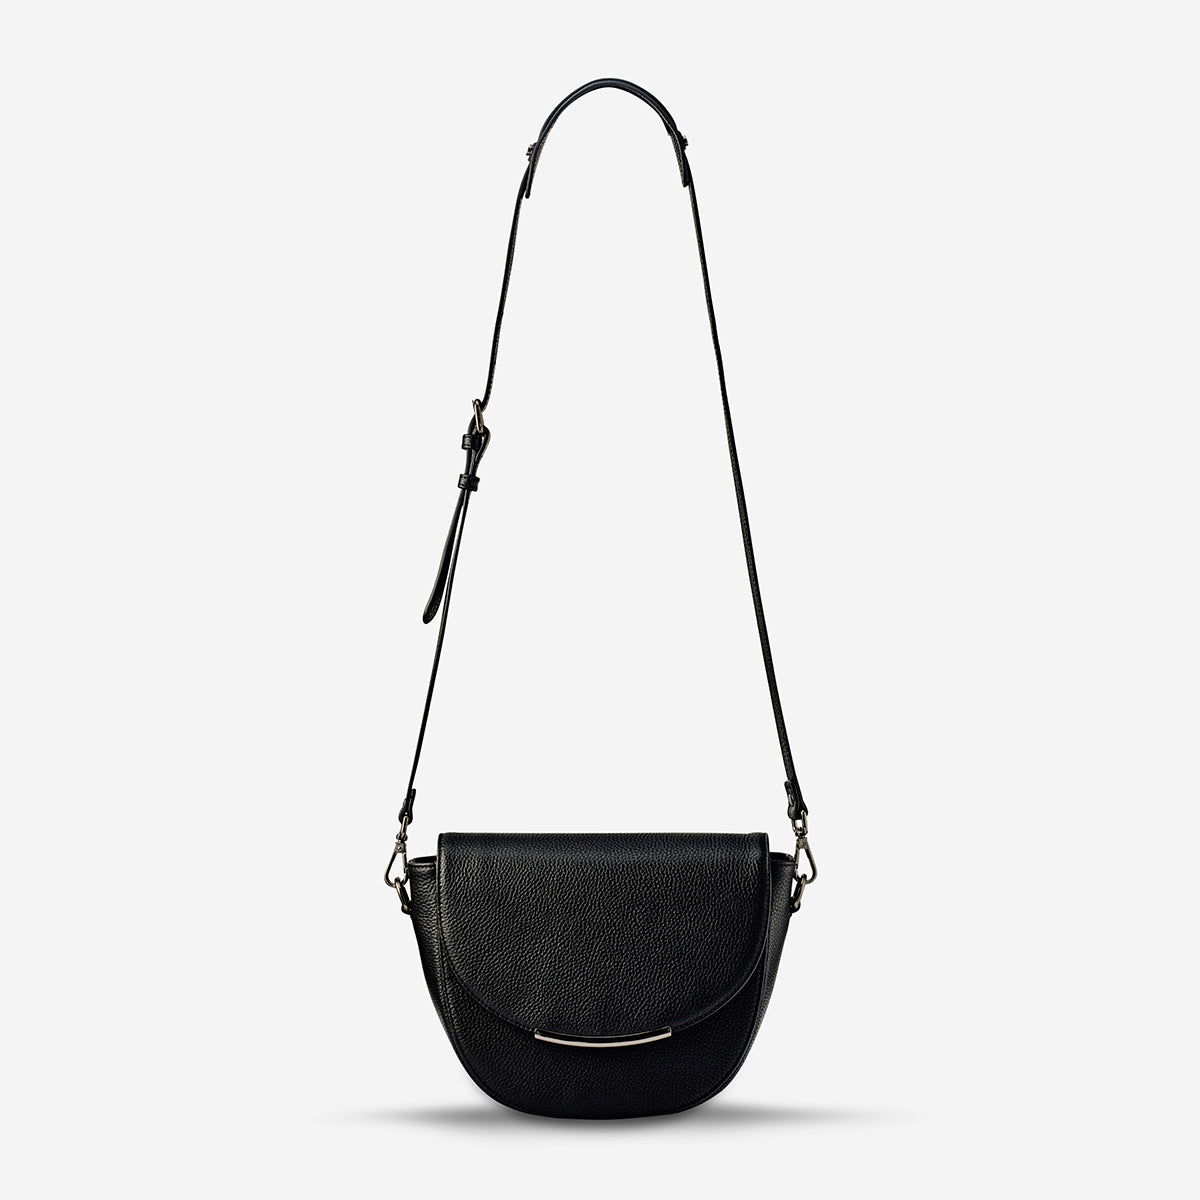 Status Anxiety The Oracle Women's Leather Crossbody Bag - Black